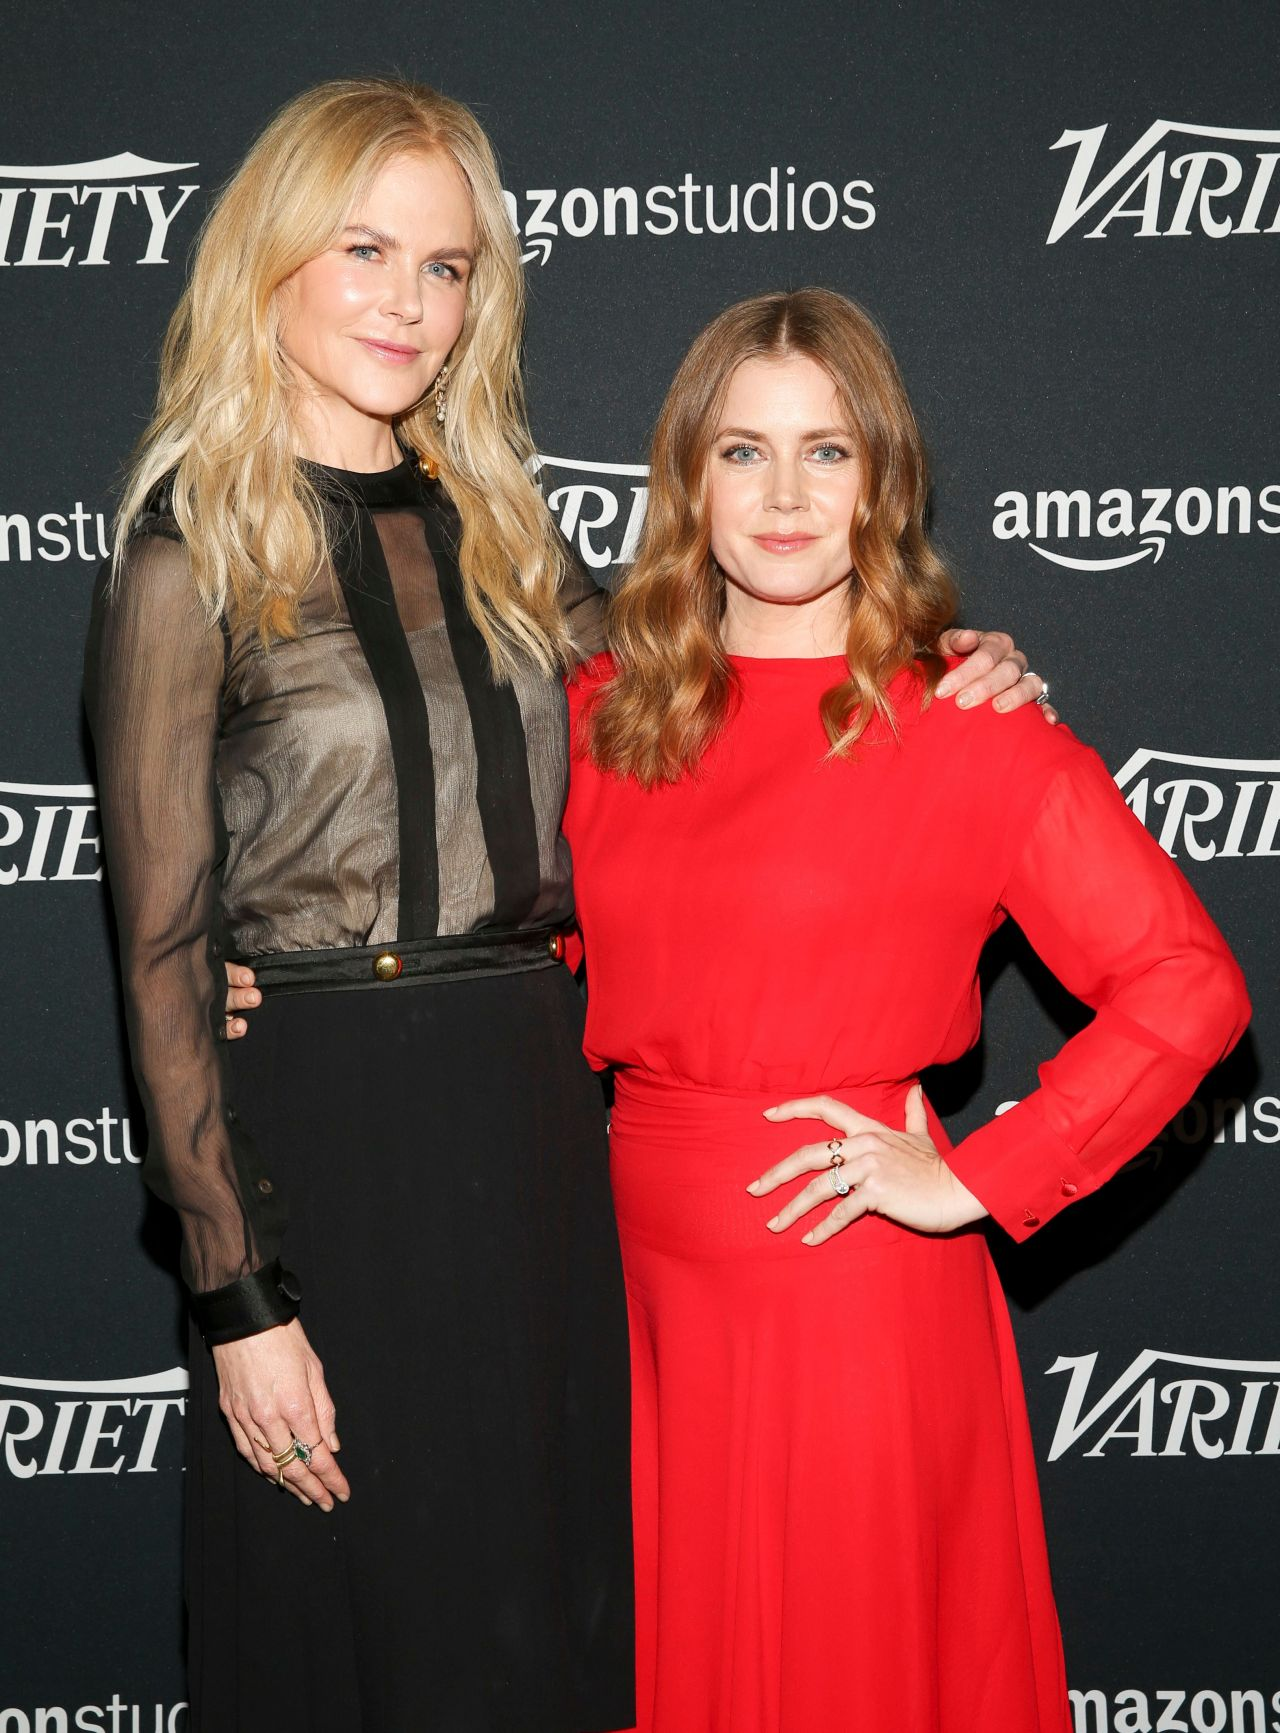 https://celebmafia.com/wp-content/uploads/2018/11/amy-adams-and-nicole-kidman-actors-on-actors-awards-studio-in-los-angeles-11-17-2018-9.jpg